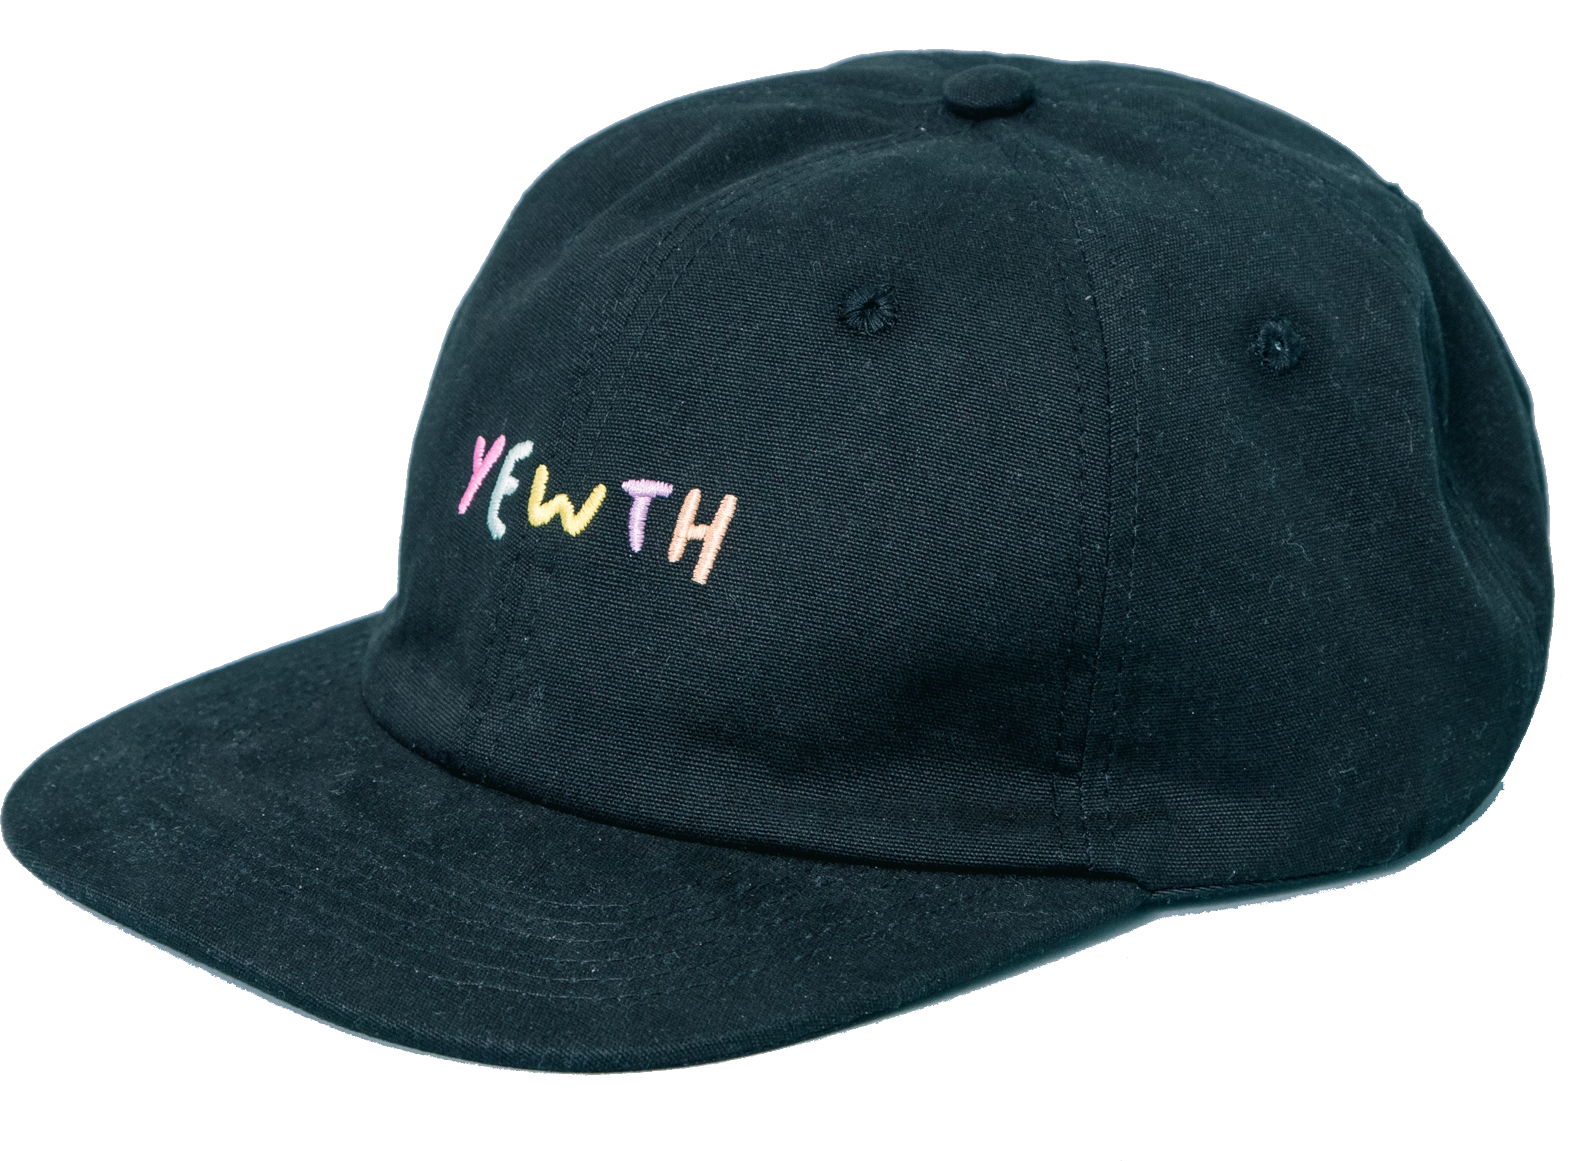 yewth embroidered hat (5 of 8).png